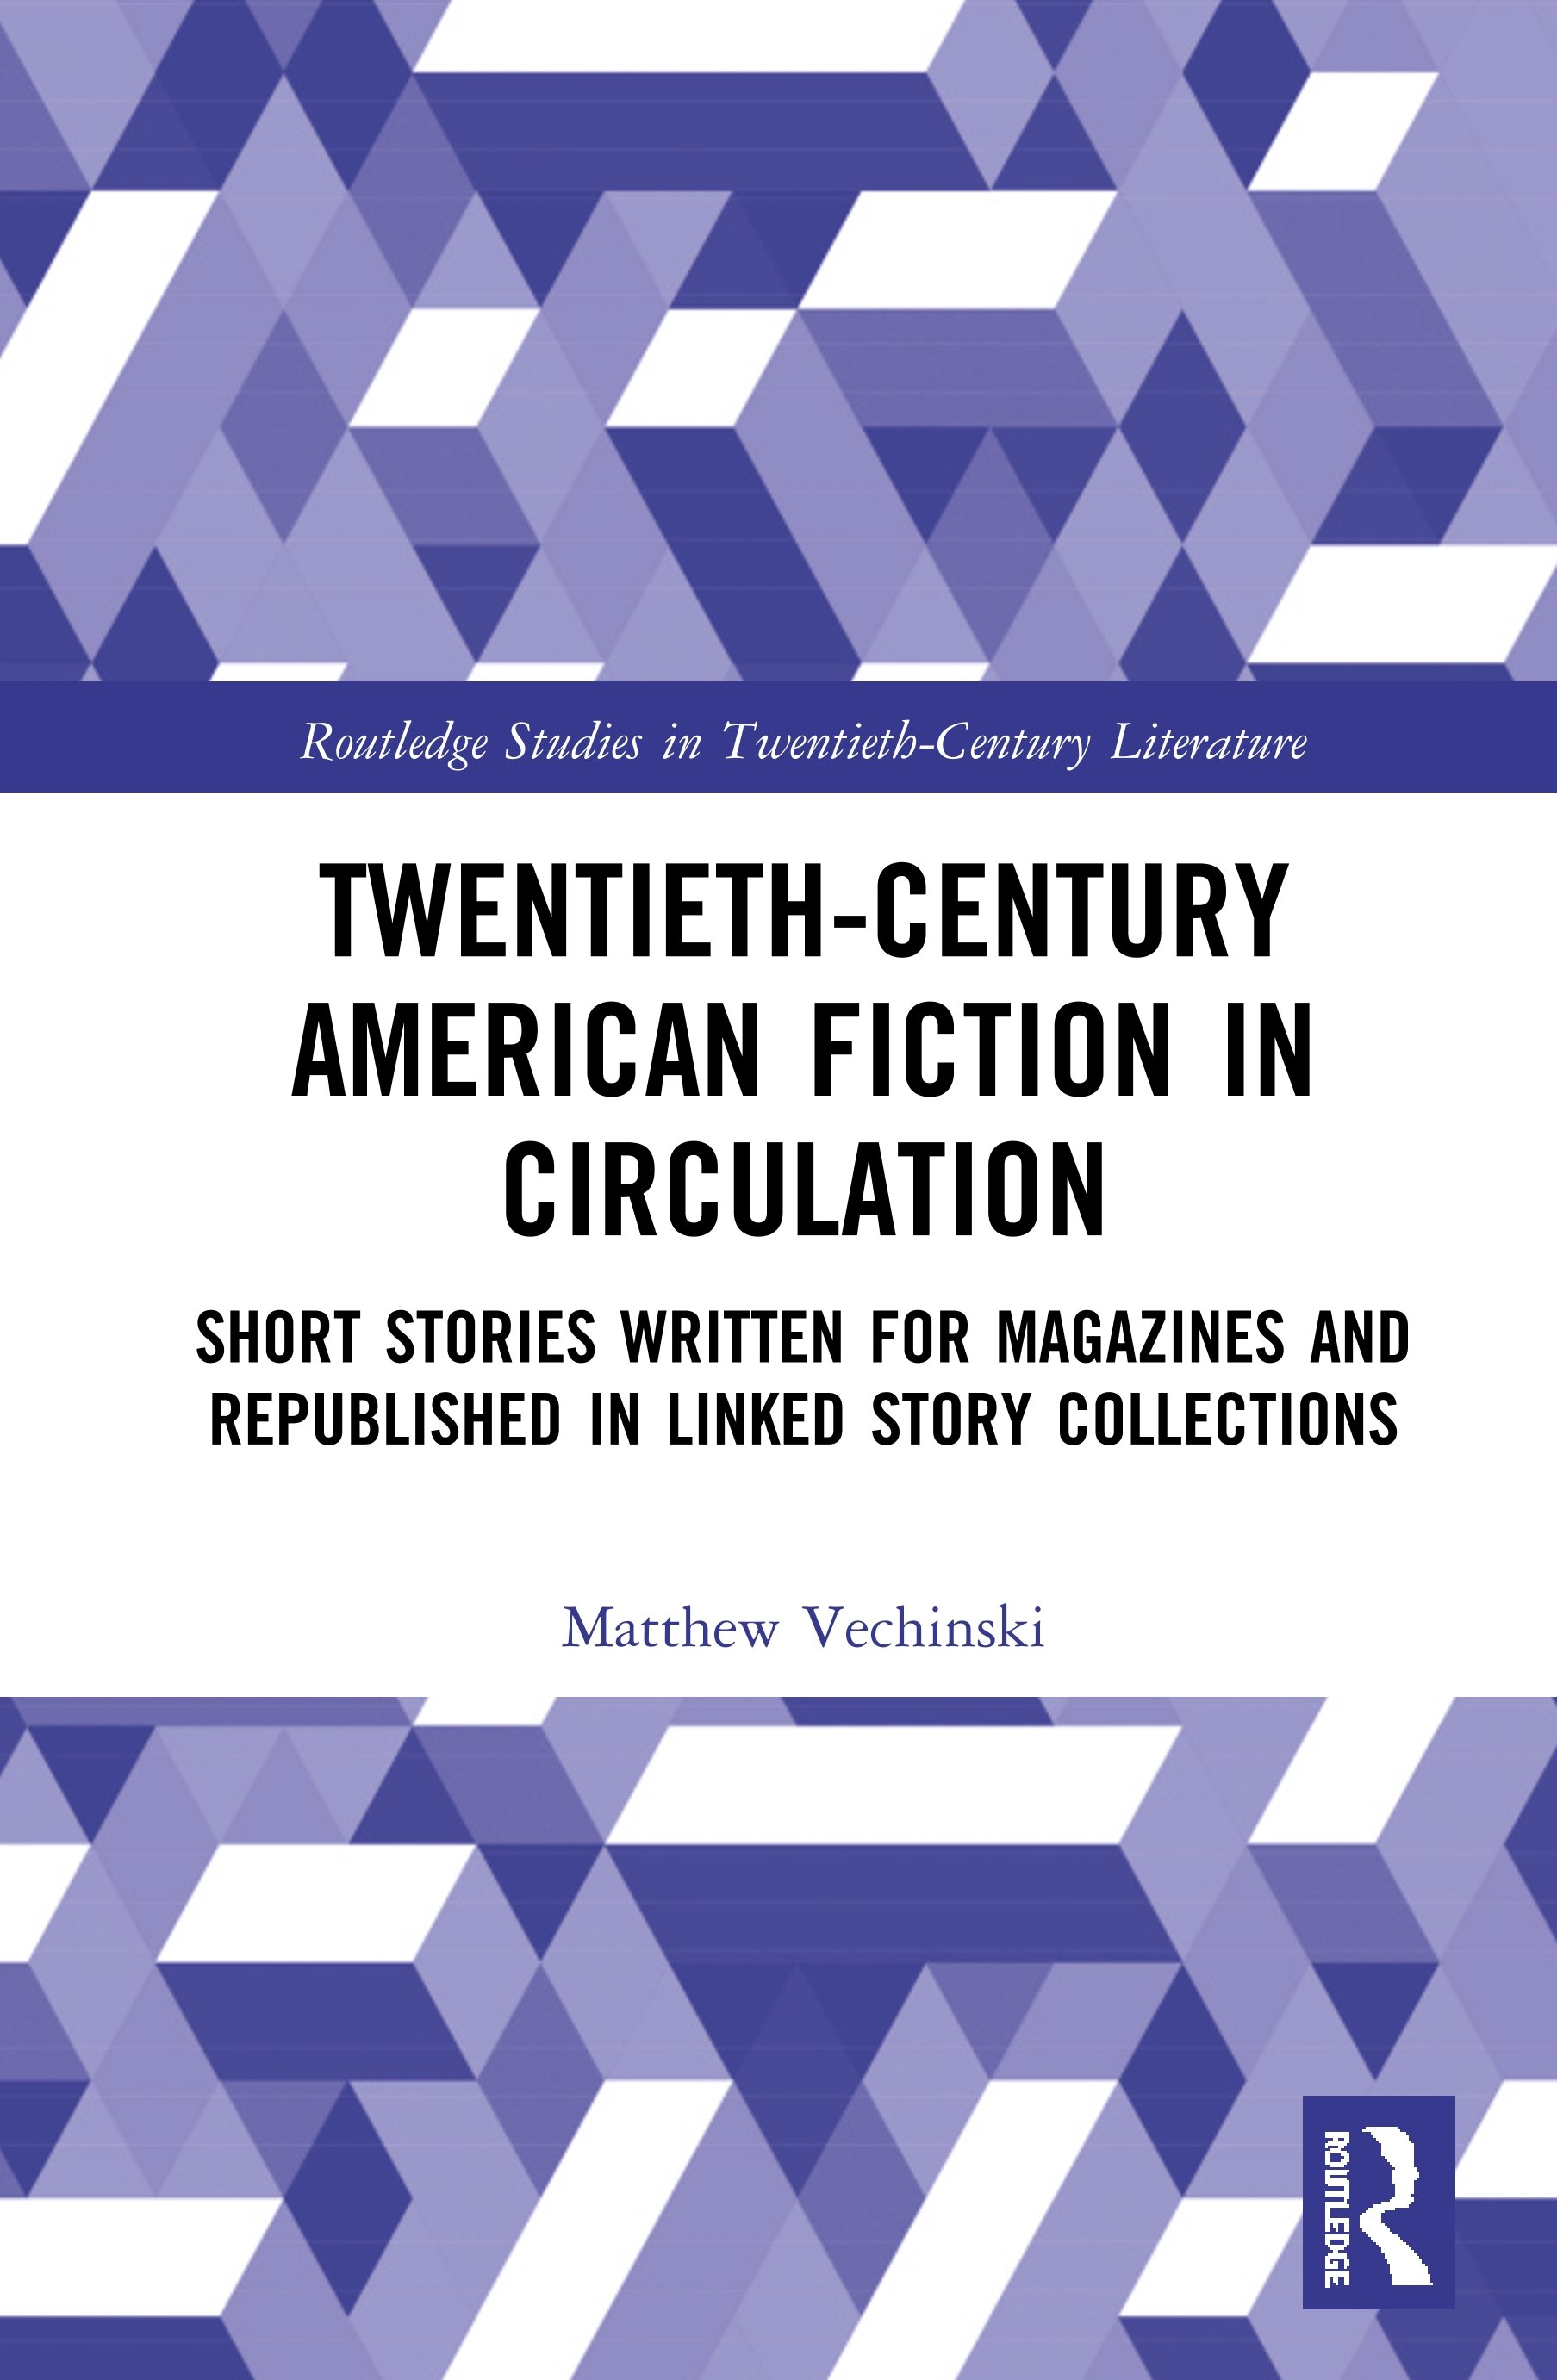 Twentieth-Century American Fiction in Circulation: Short Stories Written for Magazines and Republished in Linked Story Collections book cover